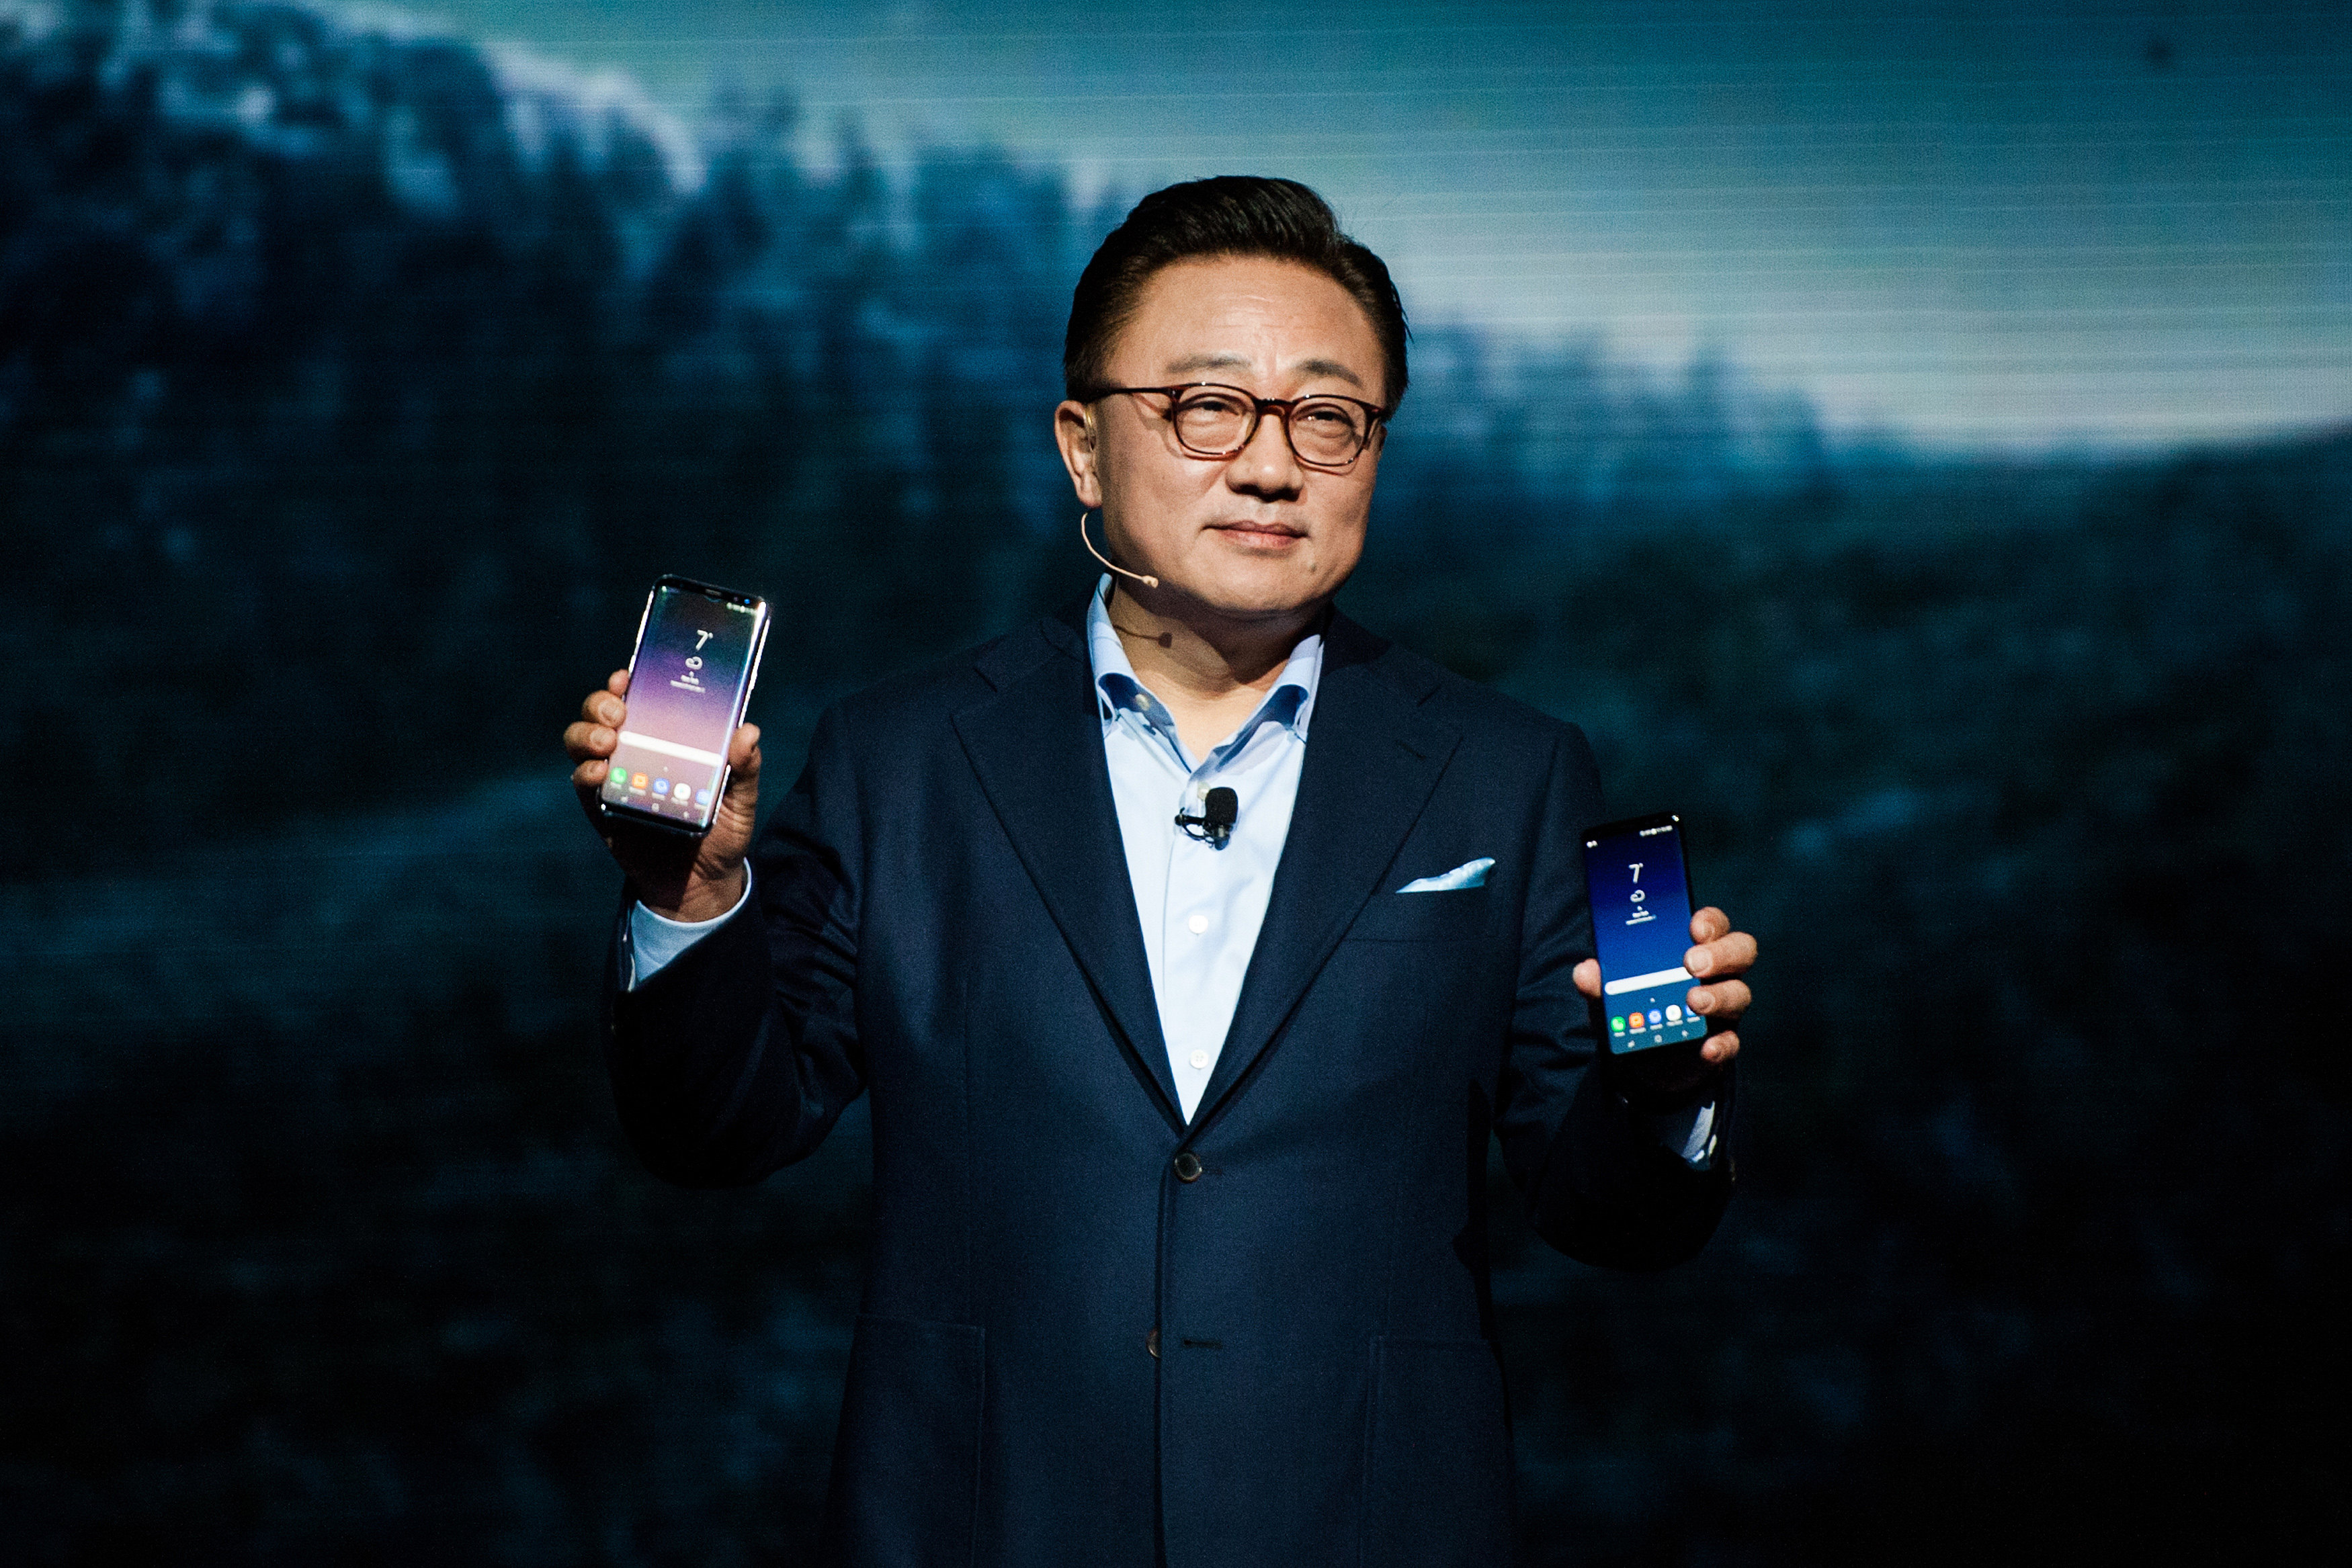 Inside The Samsung Electronics Co. Unpacked Product Launch Event